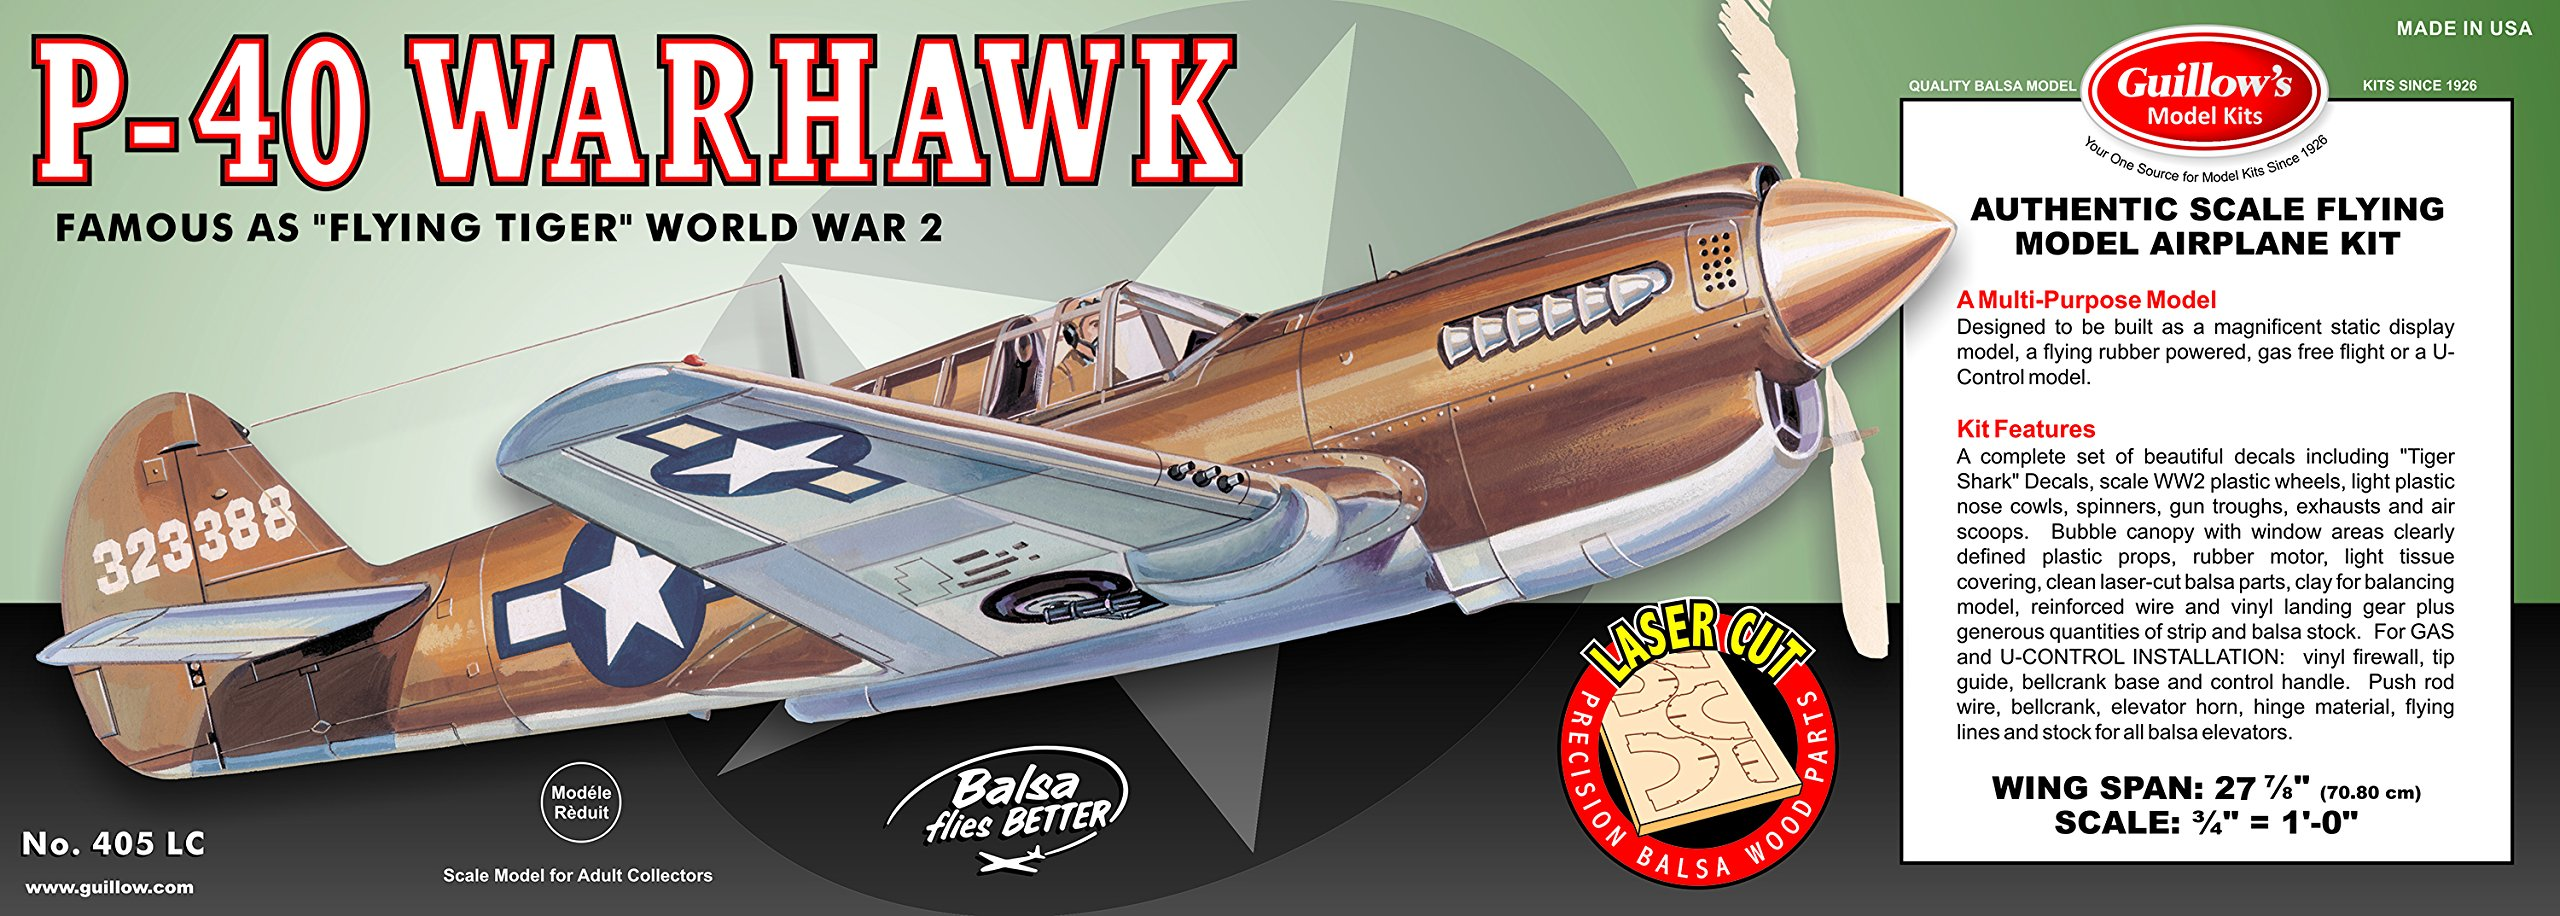 Guillow's P-40 Warhawk Laser Cut Model Kit by Guillow